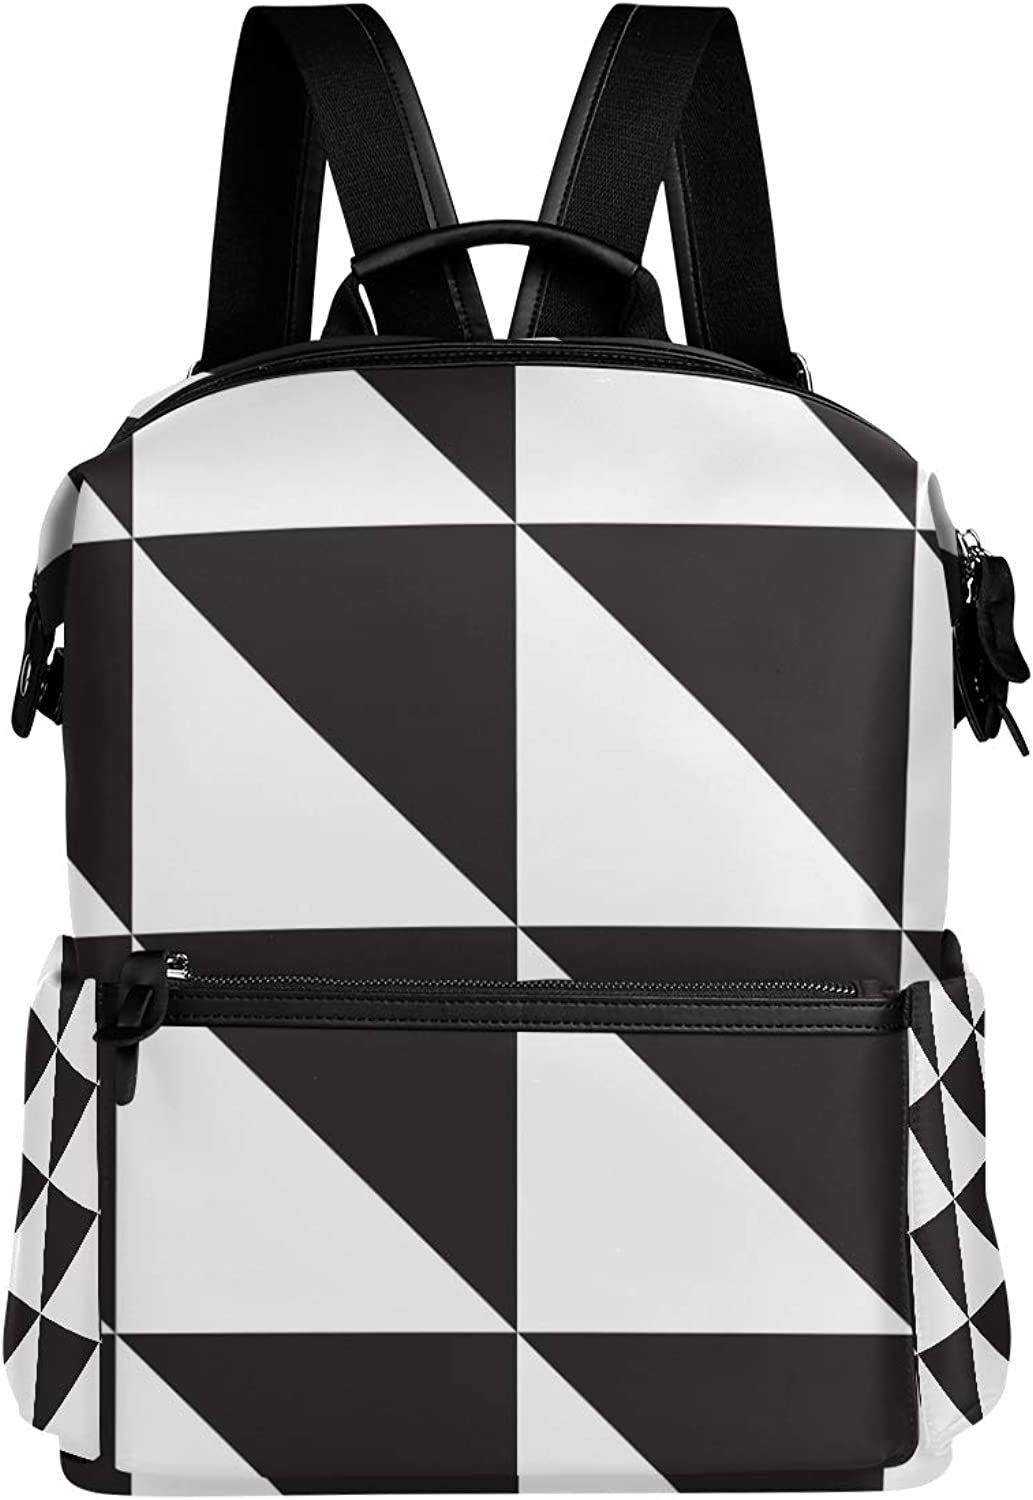 MONTOJ Black White Triangle Pattern Leather Travel Bag Campus Backpack